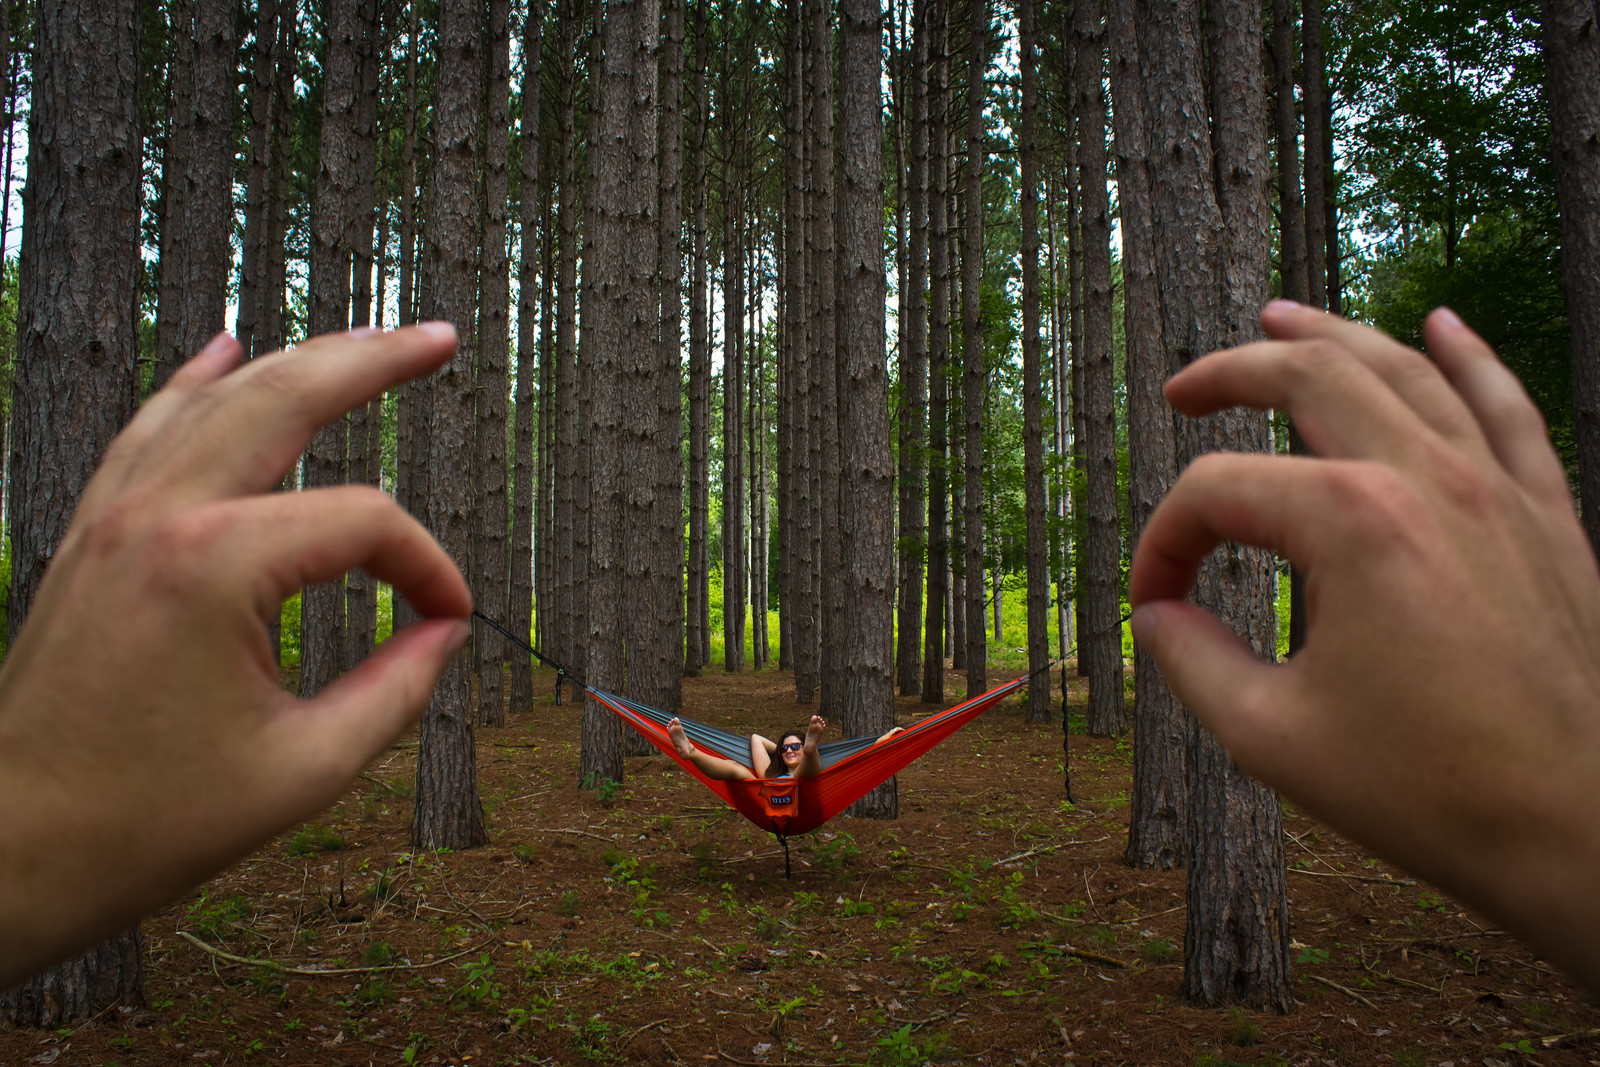 Eno Hammocks - Oak Openings Metro Park - Ohio